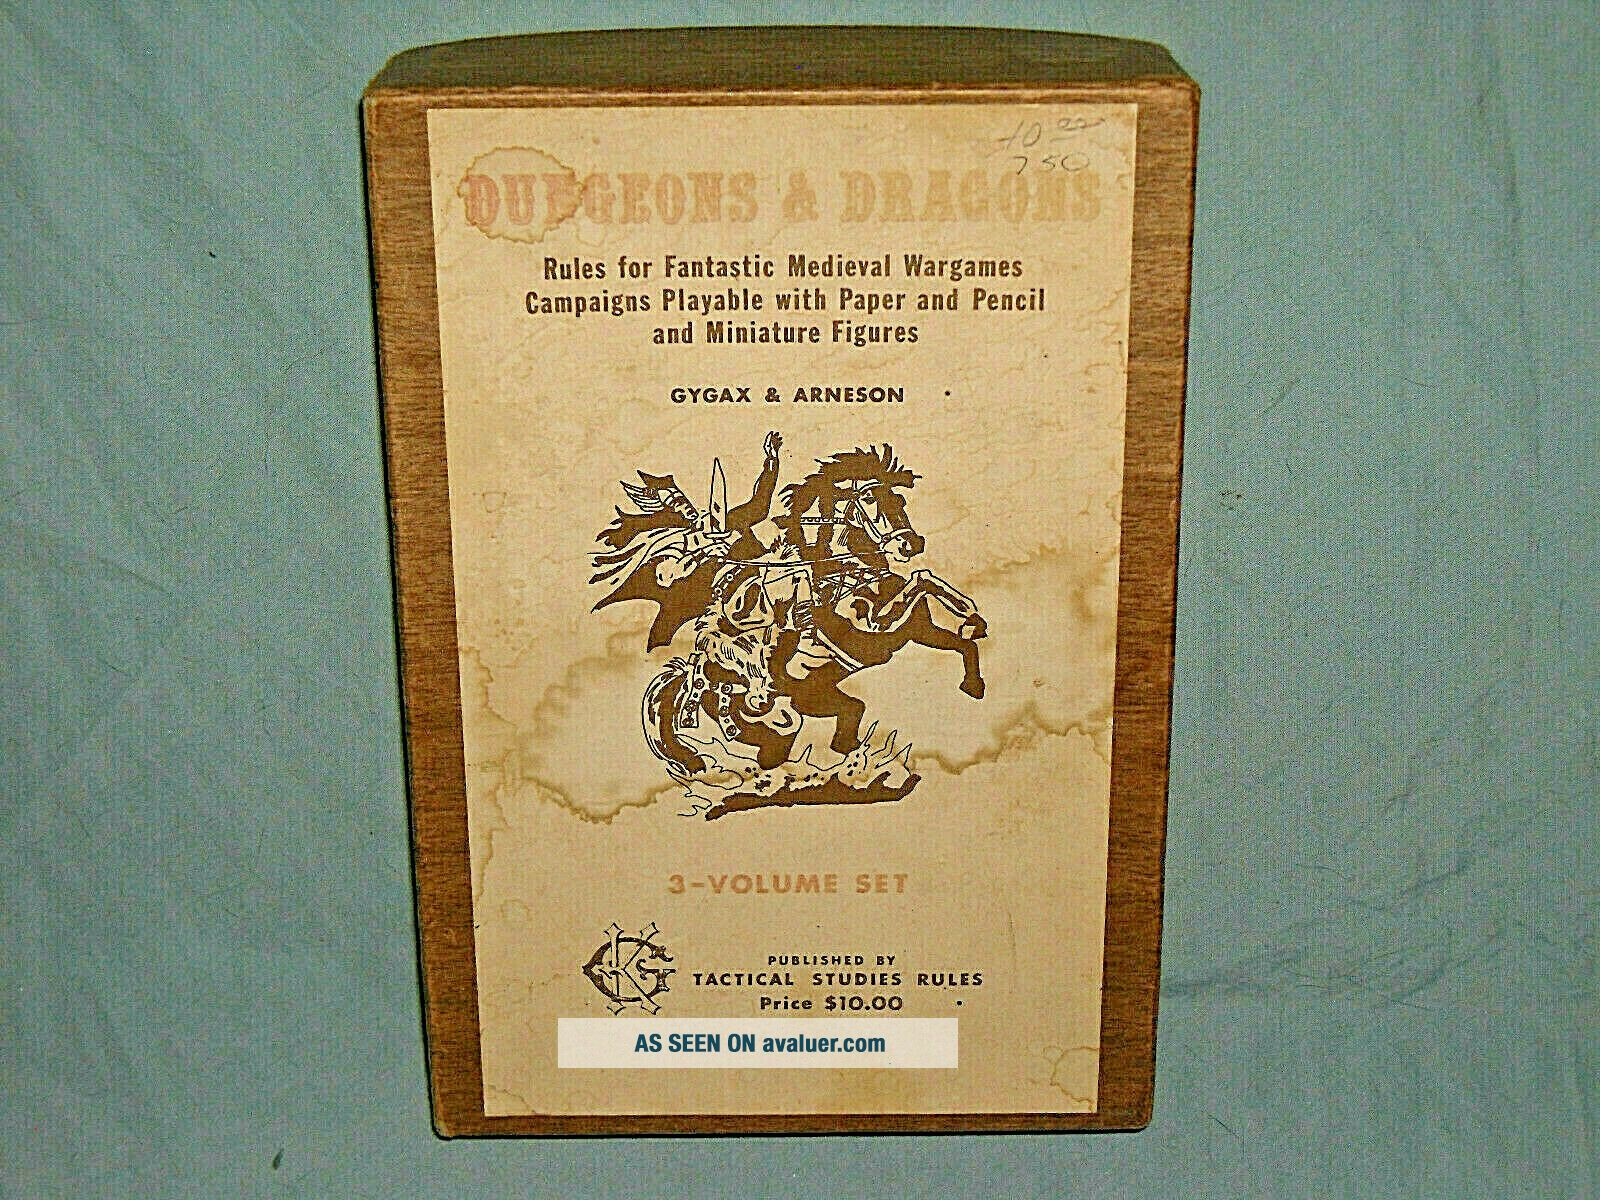 TSR ' s - DUNGEONS & DRAGONS WOODGRAIN BOXED SET FROM 1975 (ULTRA RARE)